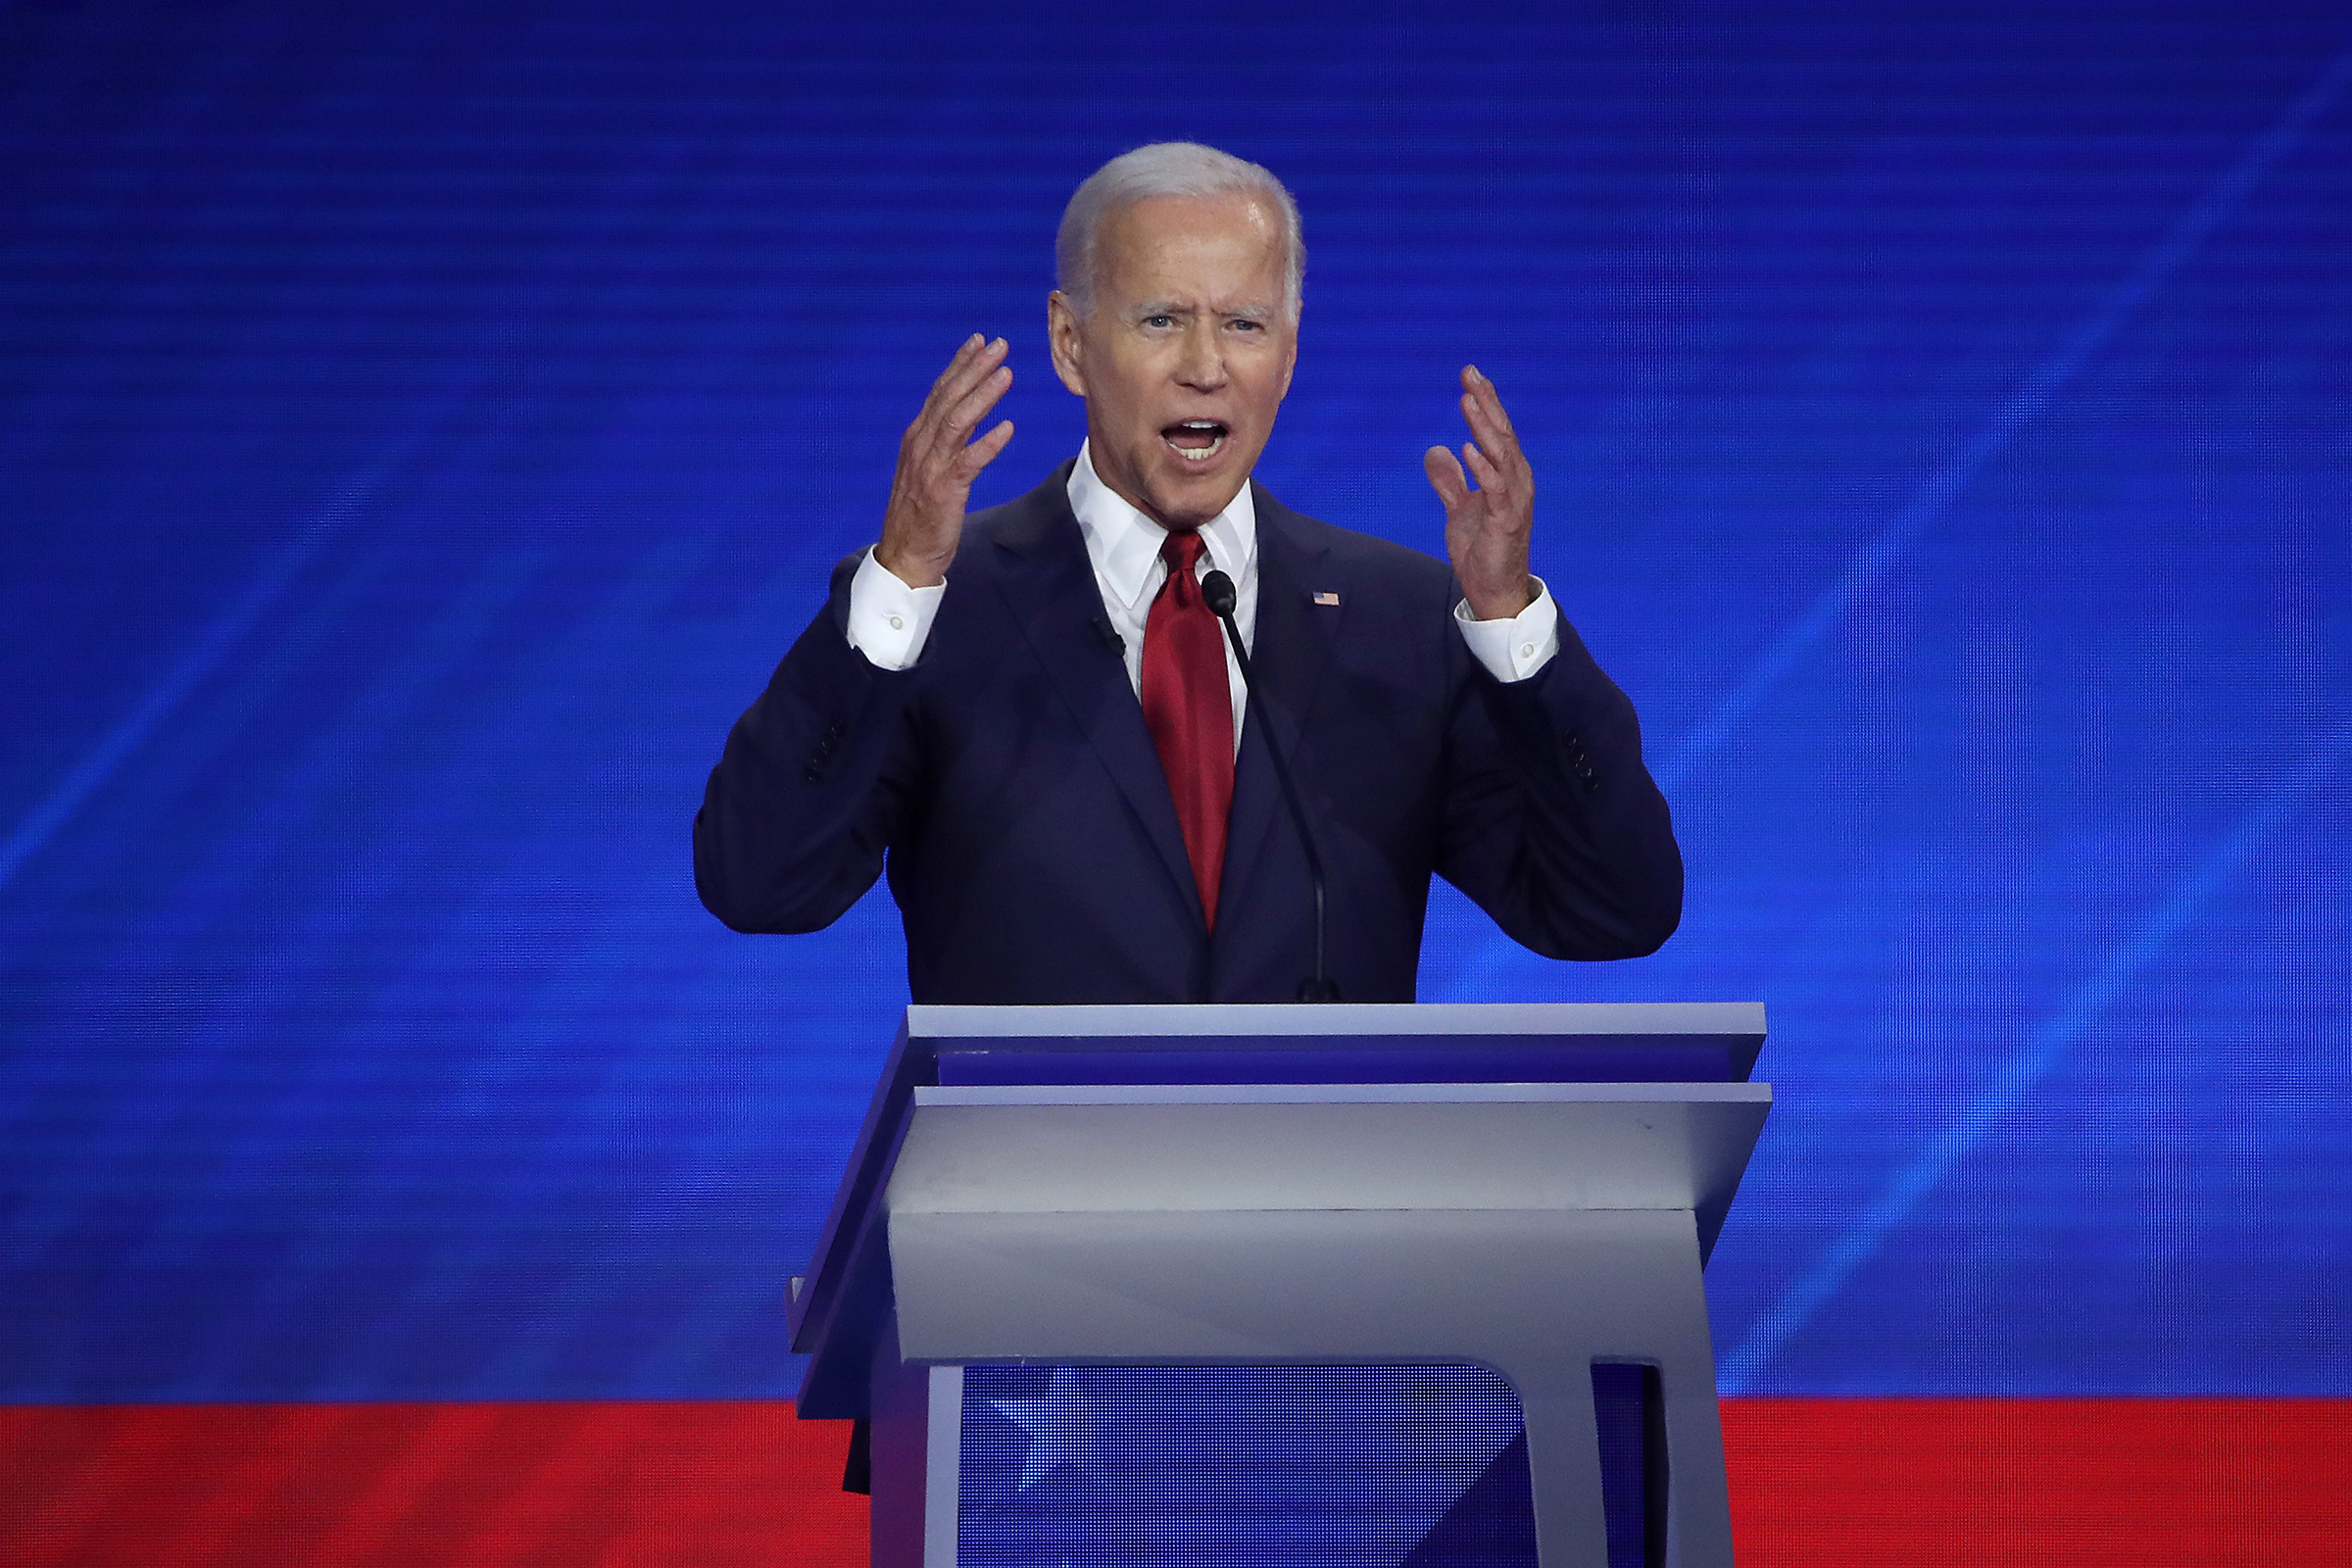 Democratic presidential candidate former Vice President Joe Biden speaks during the Democratic Presidential Debate at Texas Southern University's Health and PE Center on September 12, 2019 in Houston, Texas.